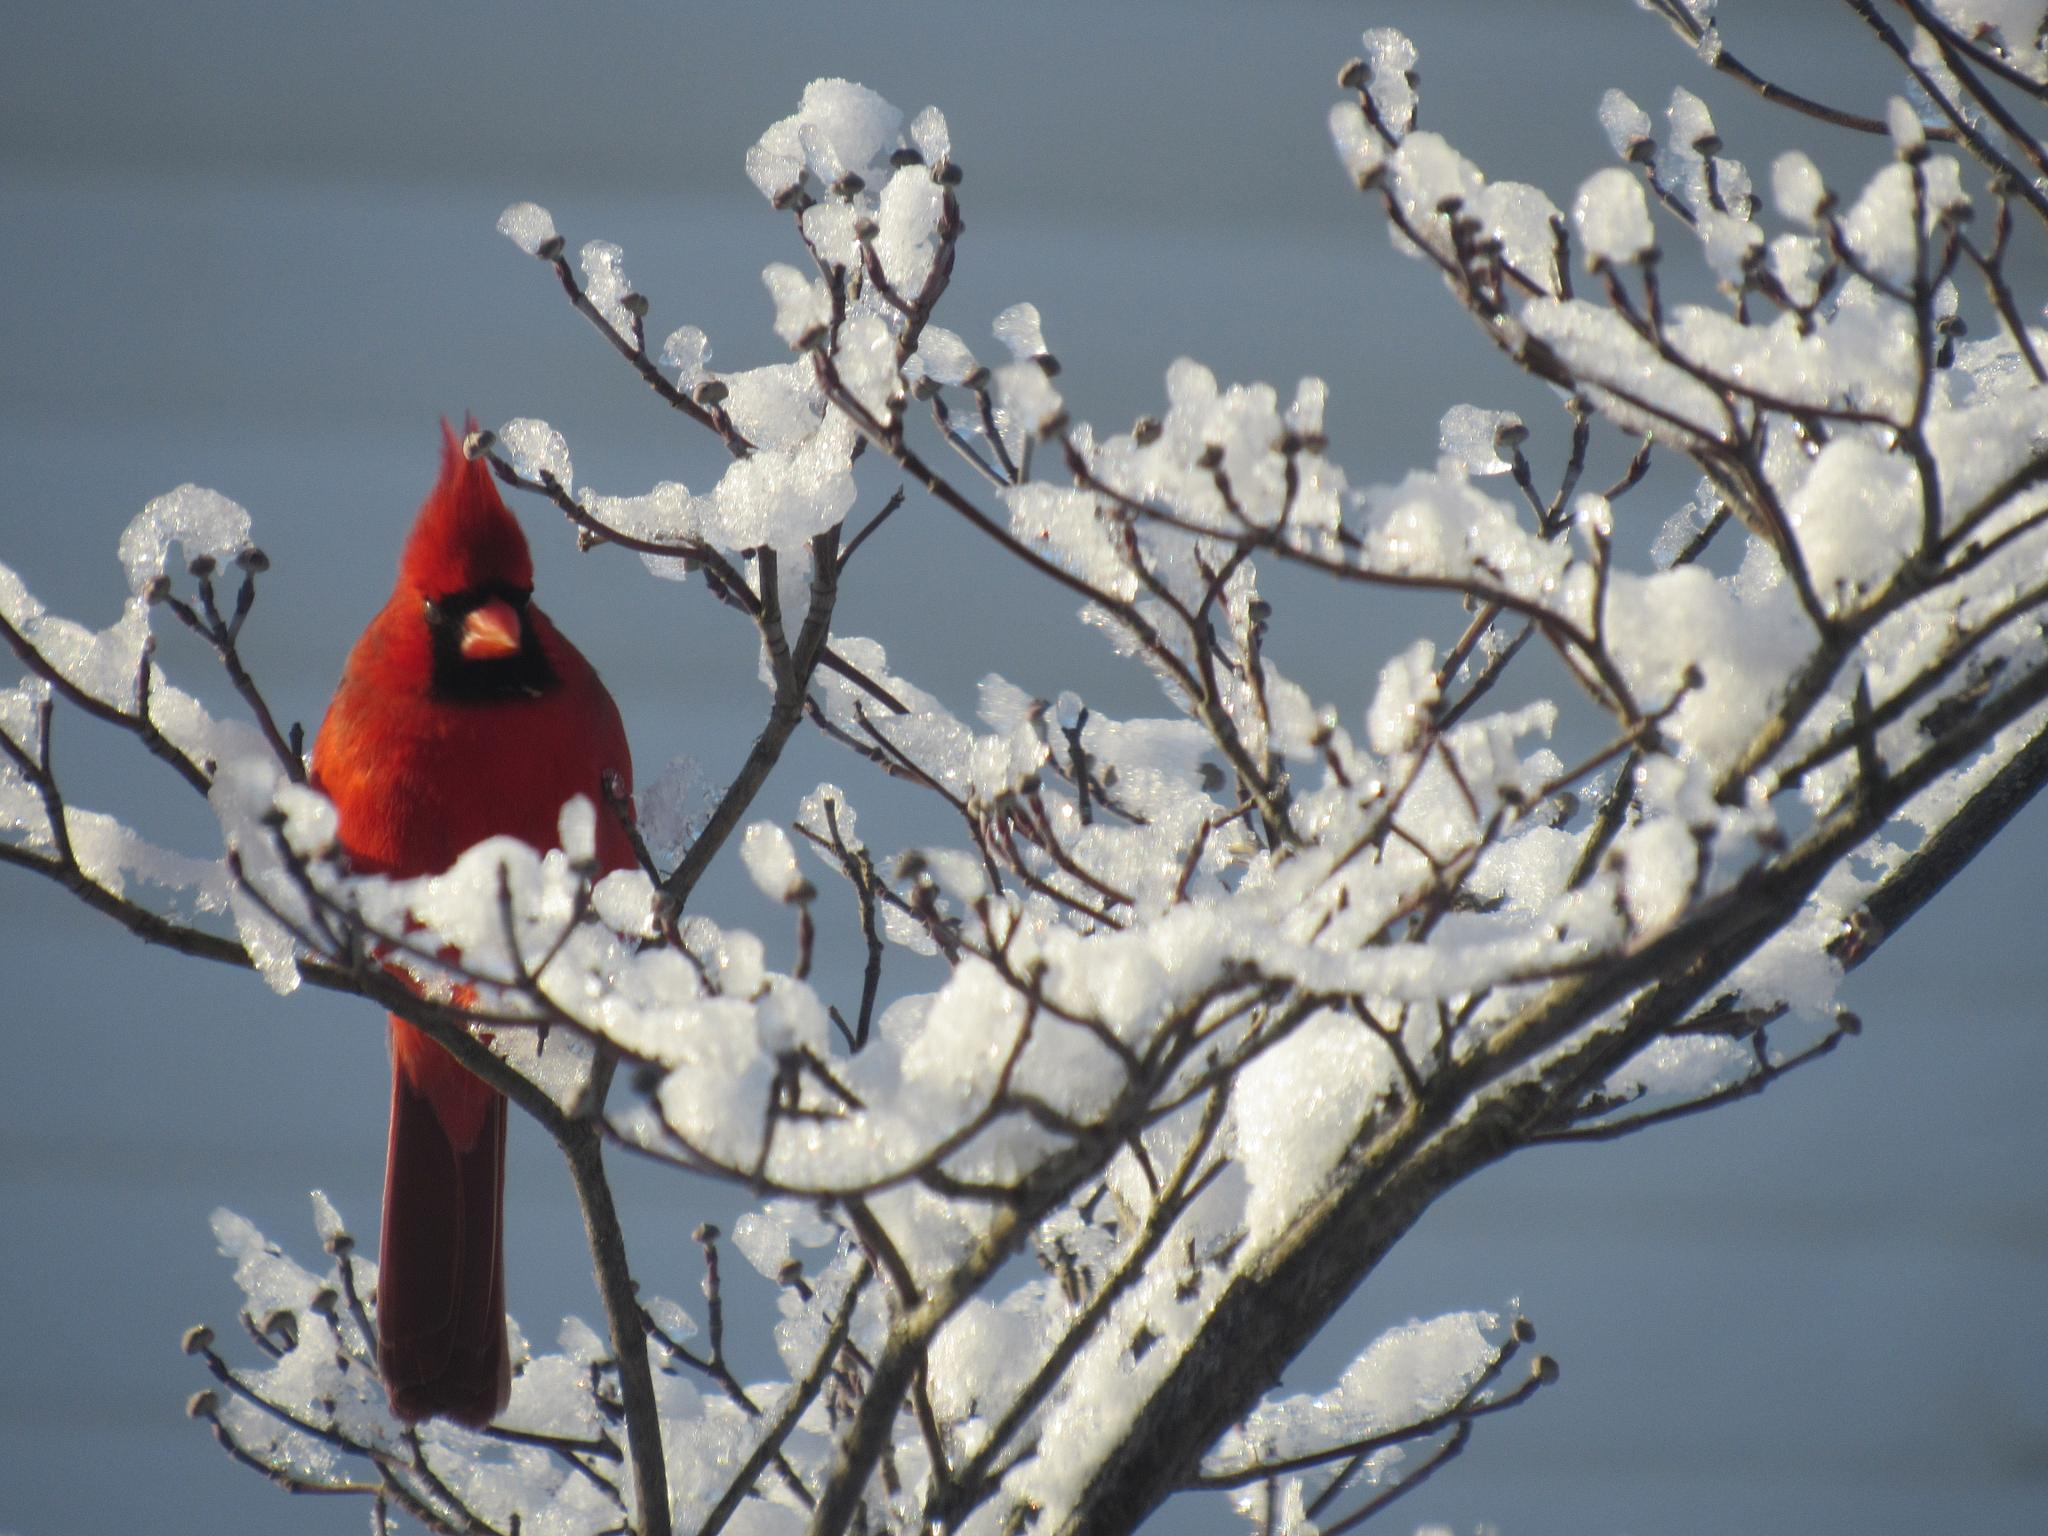 Winter bird beauty by patty.weeks1